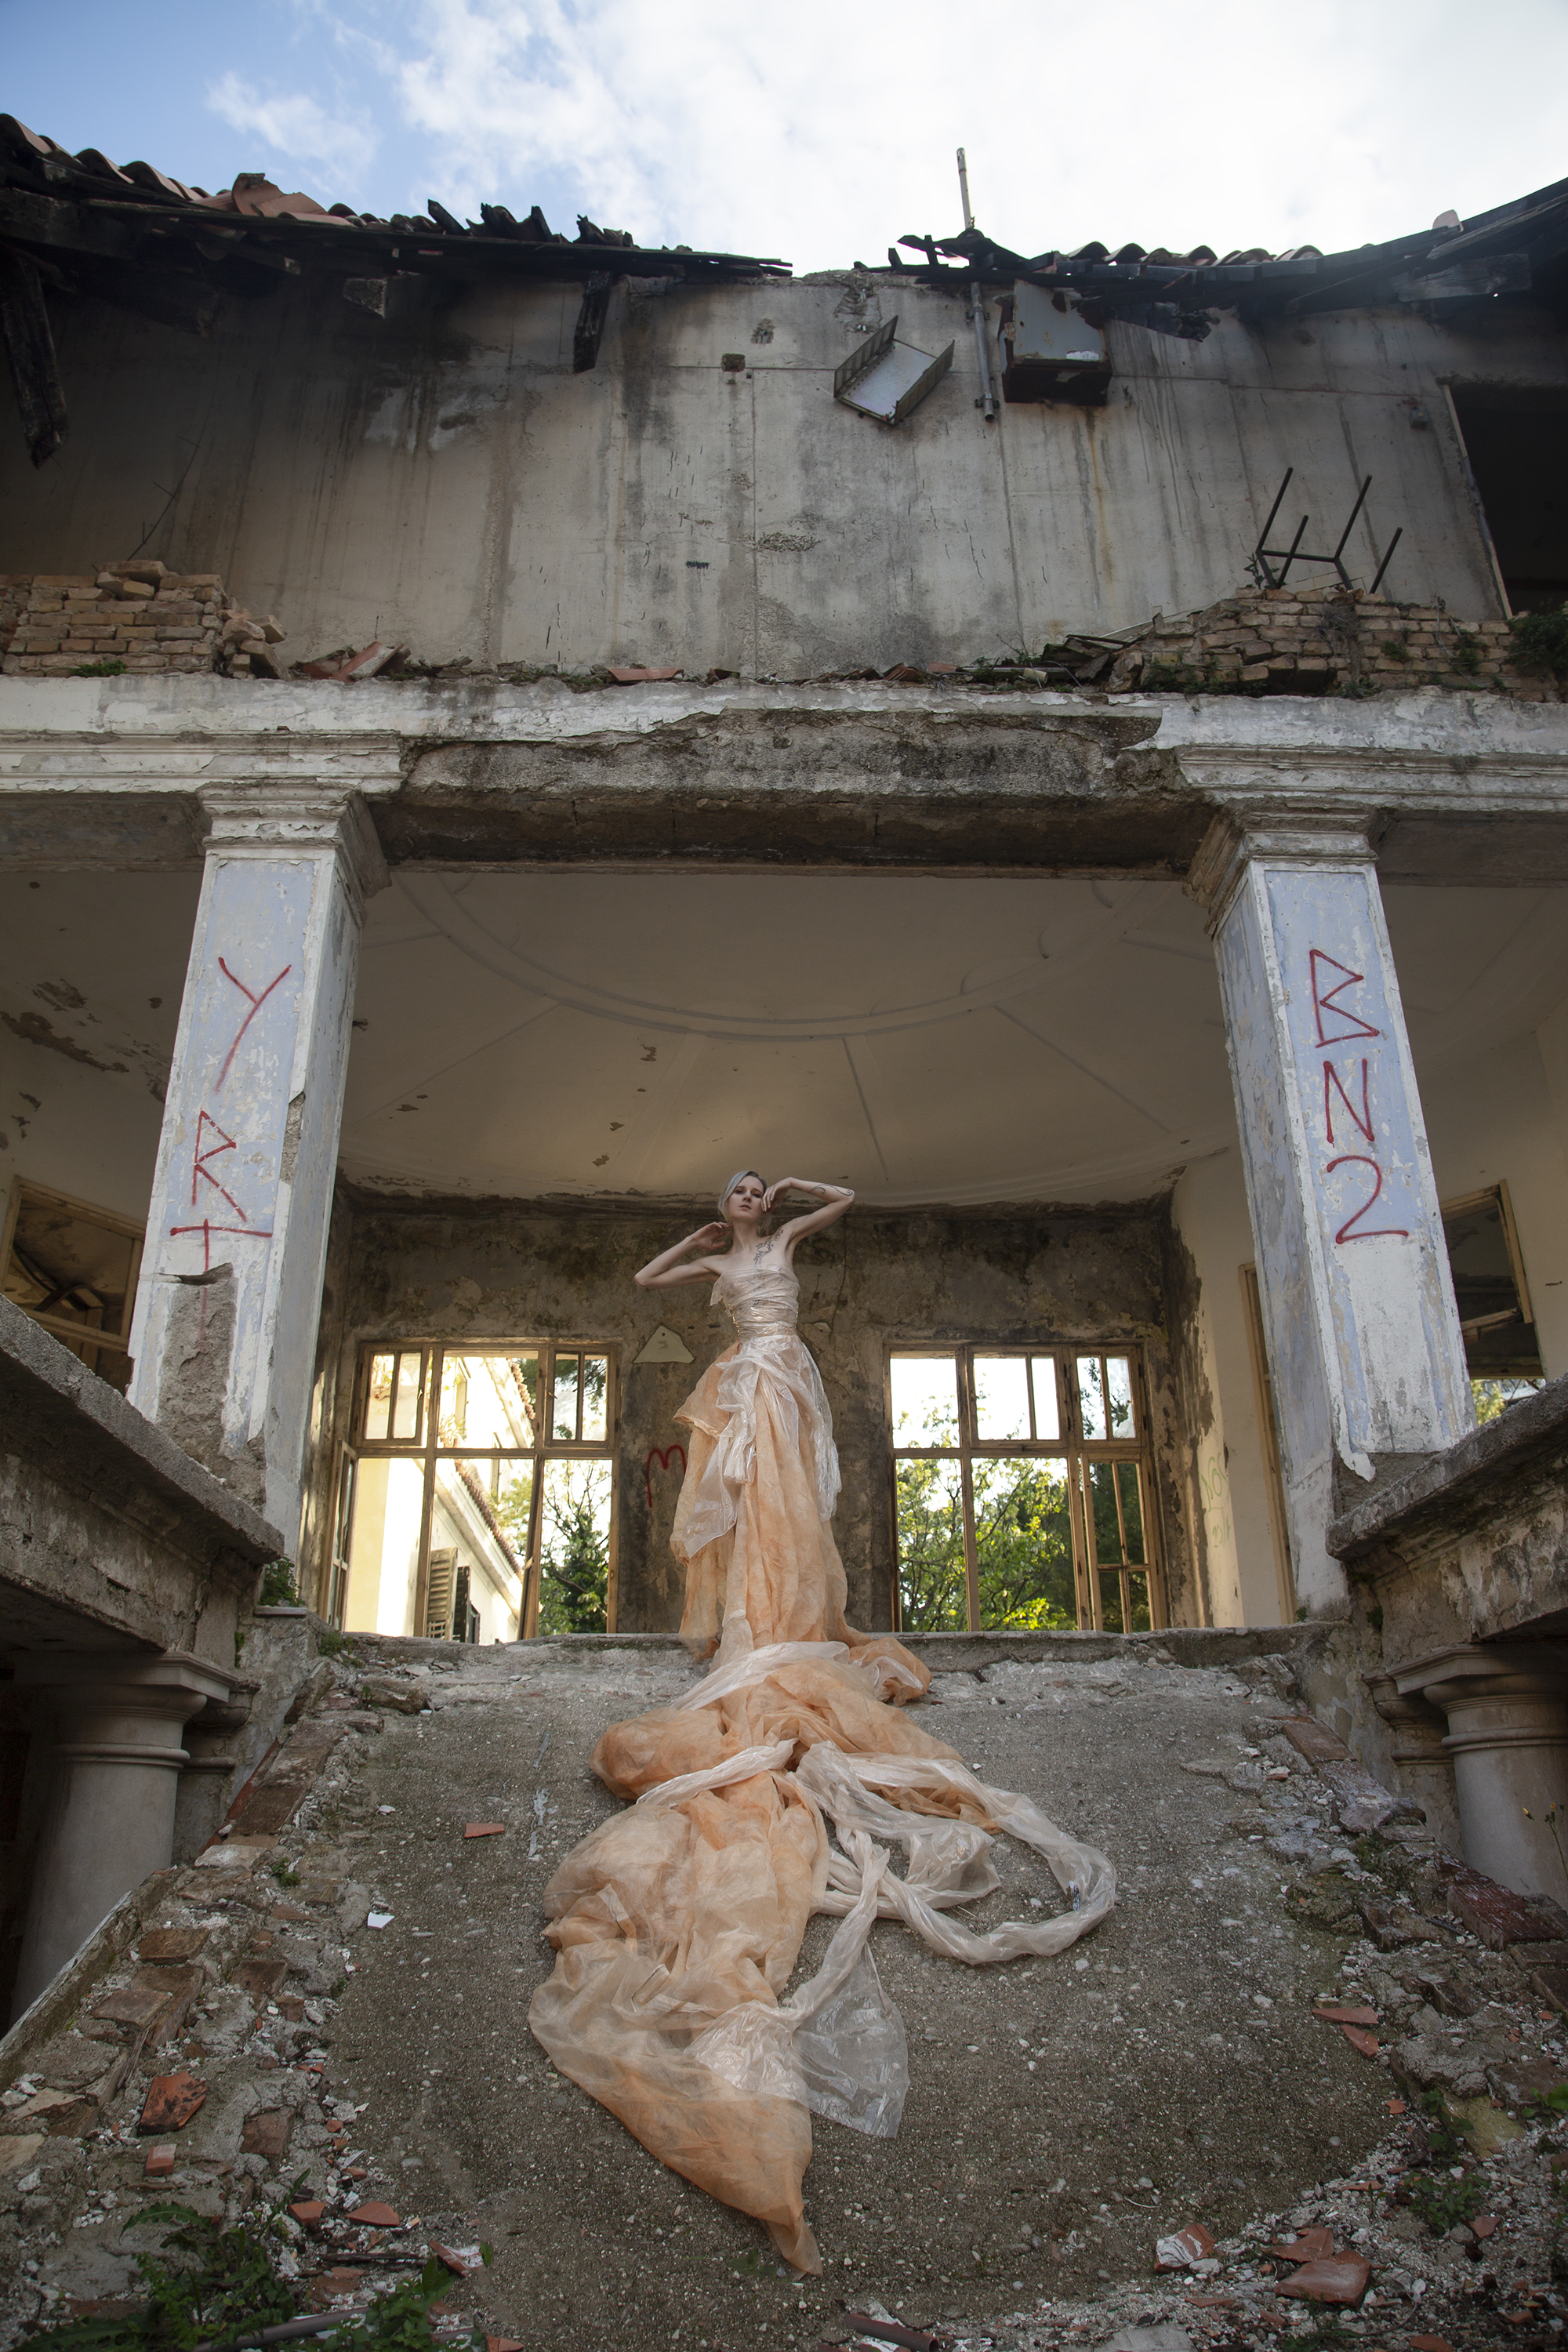 Roxx, shot by Redd, at an abandoned hotel in Croatia, wearing a dress draped from discarded mesh and plastic.